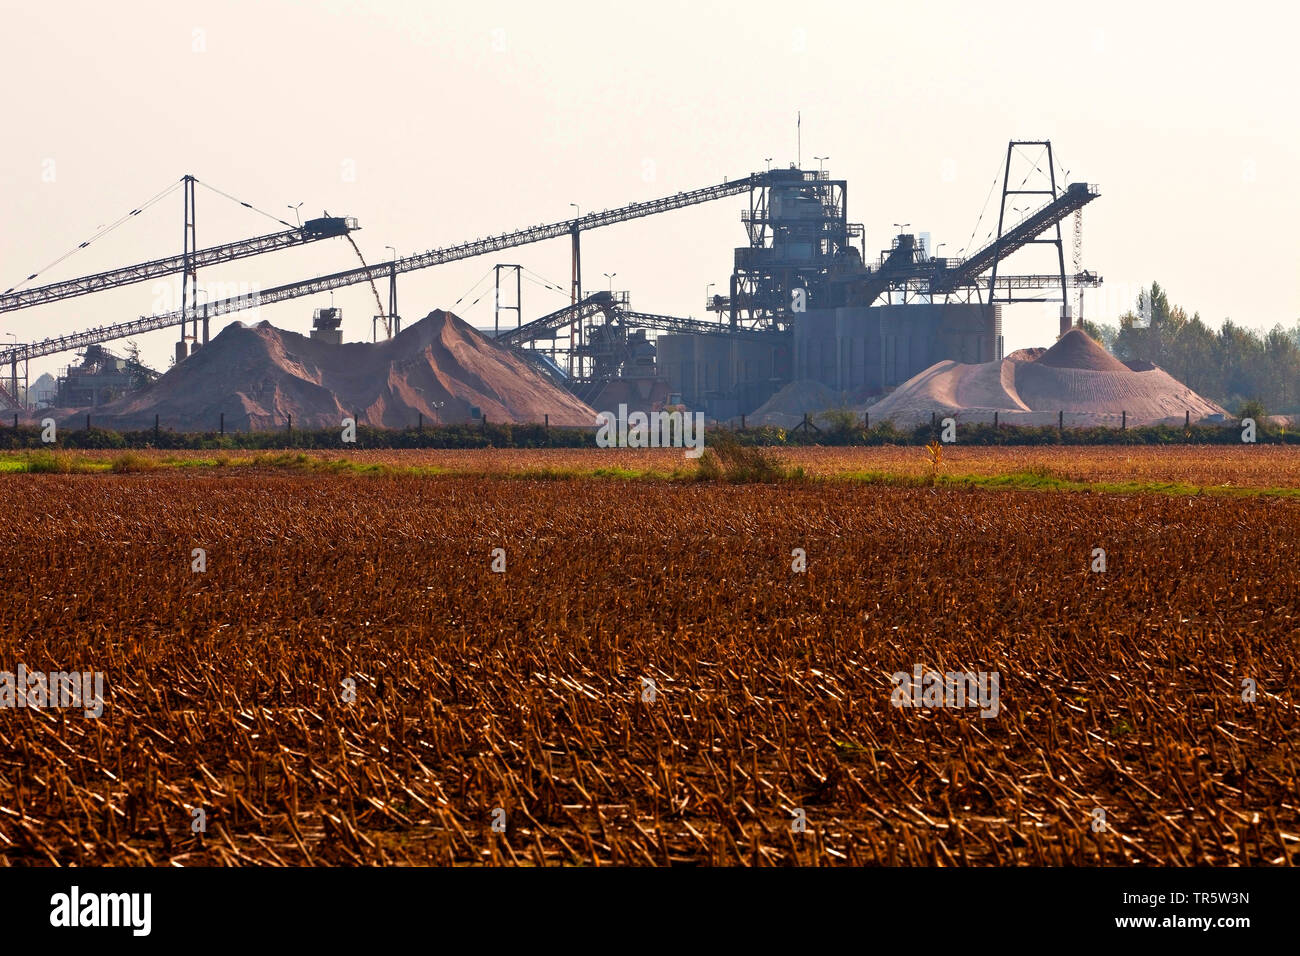 harvested maize field in front of gravel plant, Germany, North Rhine-Westphalia, Ruhr Area, Wesel - Stock Image